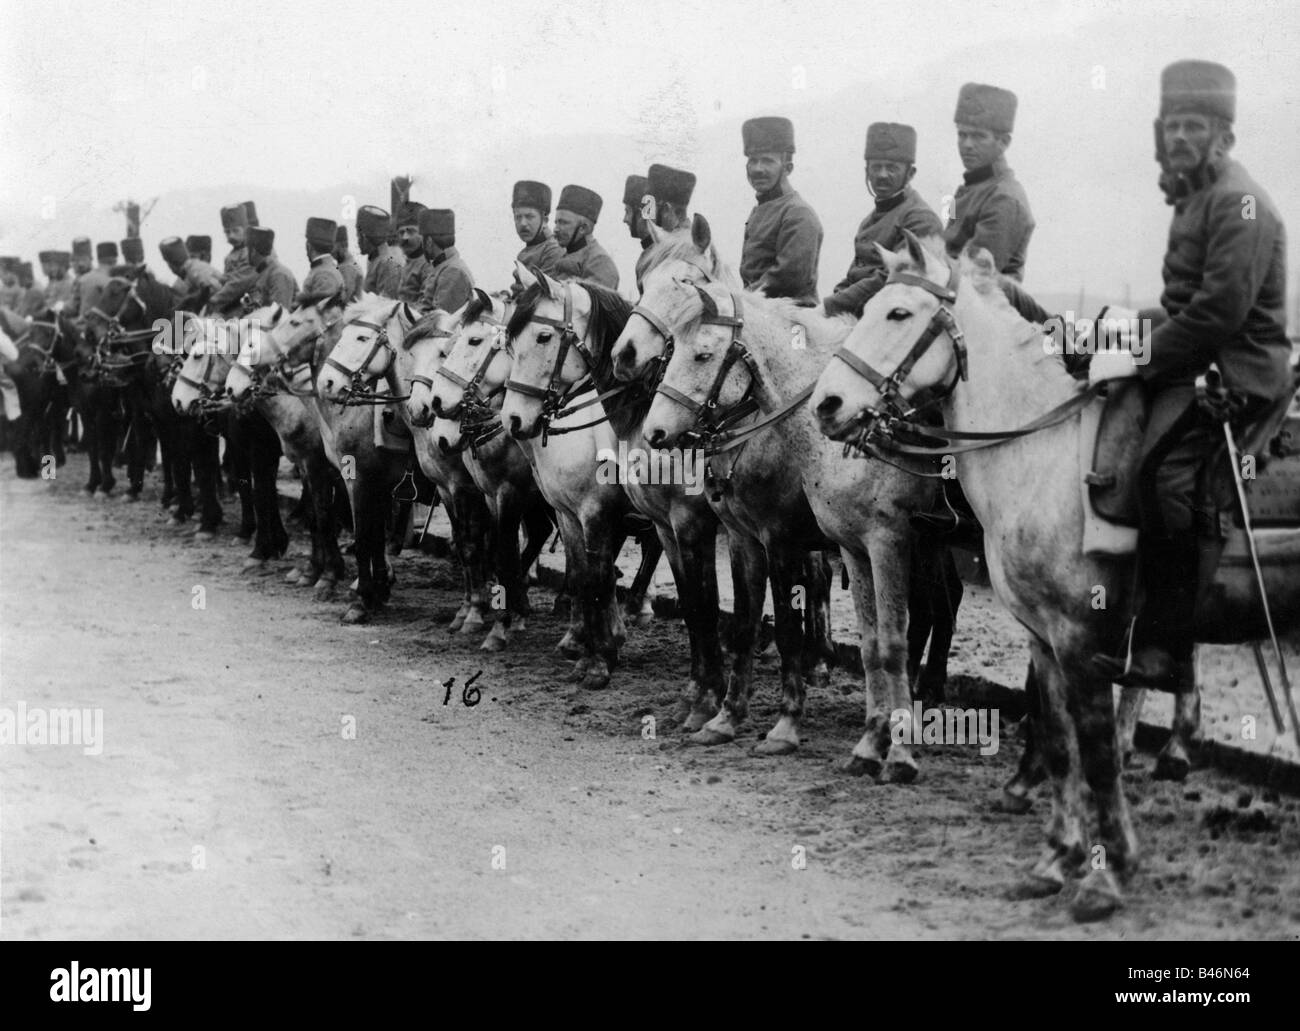 http://c8.alamy.com/comp/B46N64/events-first-world-war-wwi-military-soldiers-hungarian-hussars-circa-B46N64.jpg